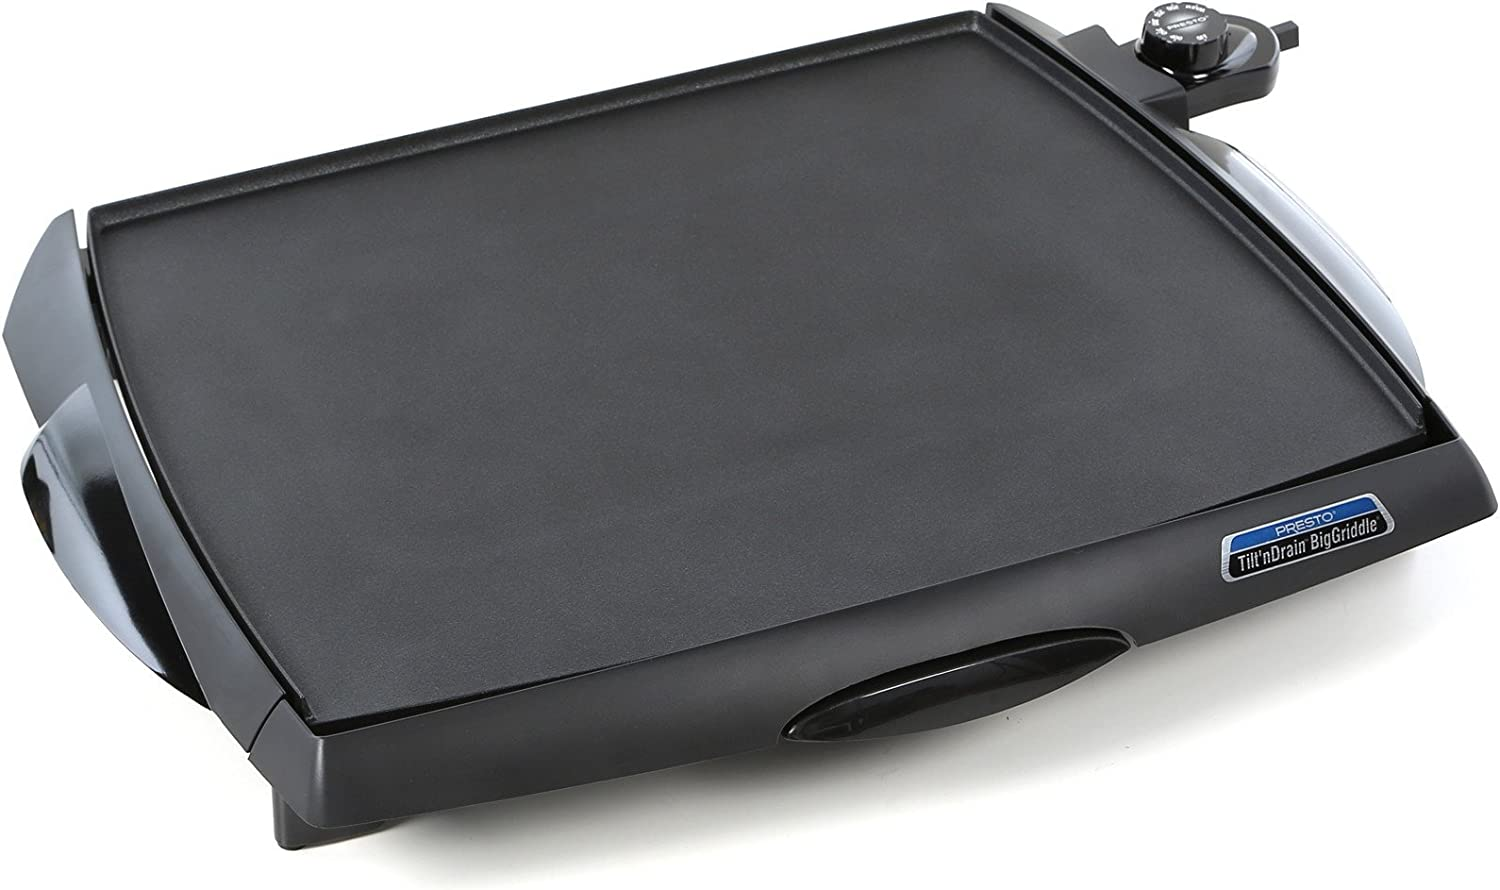 Countertop Electric Griddle in Black Finish with Slide-out Drip Tray – Made From Heavy Cast Aluminum Base and Premium Non-stick Surface with Cool-touch Handles by Presto